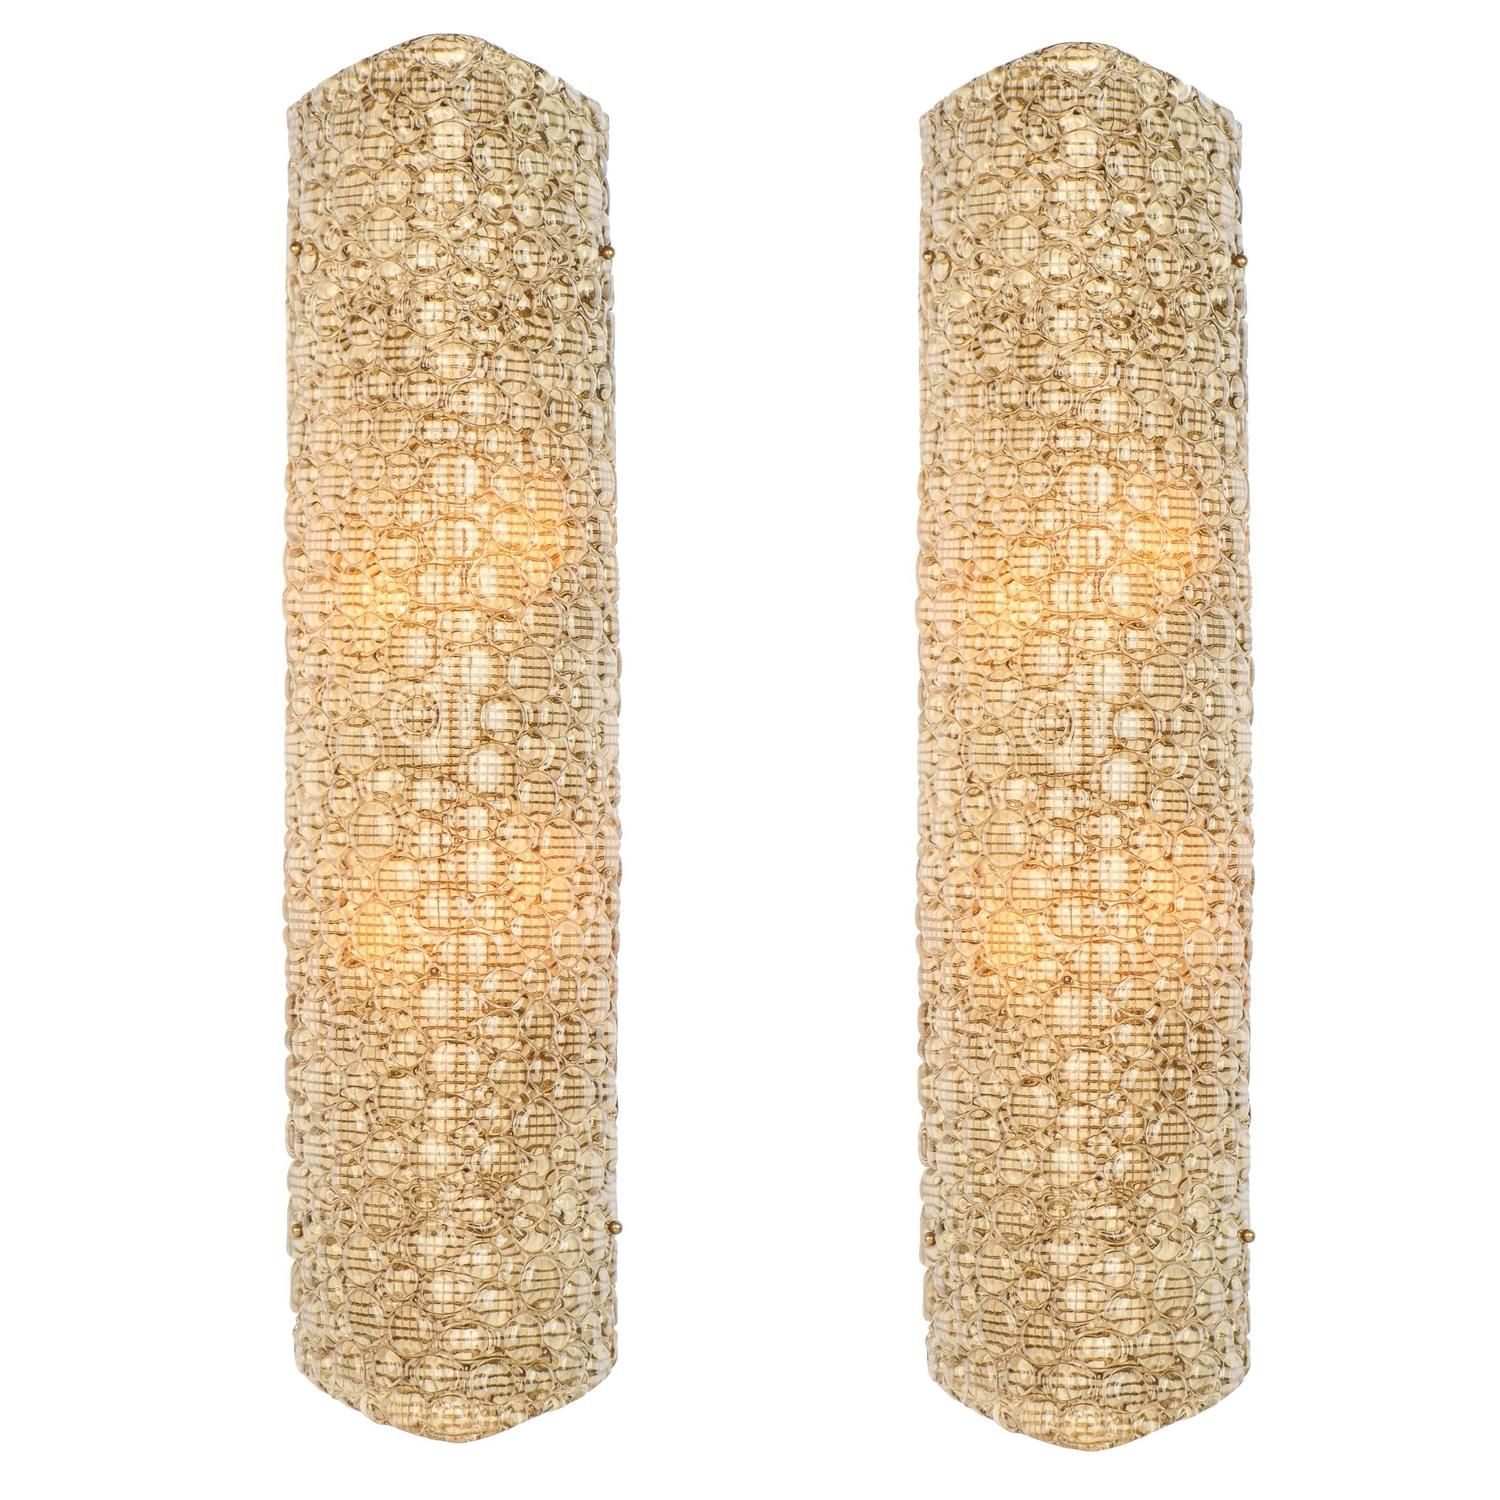 Pair of Large Murano Glass Wall Sconces | Murano glass, Wall sconces ...